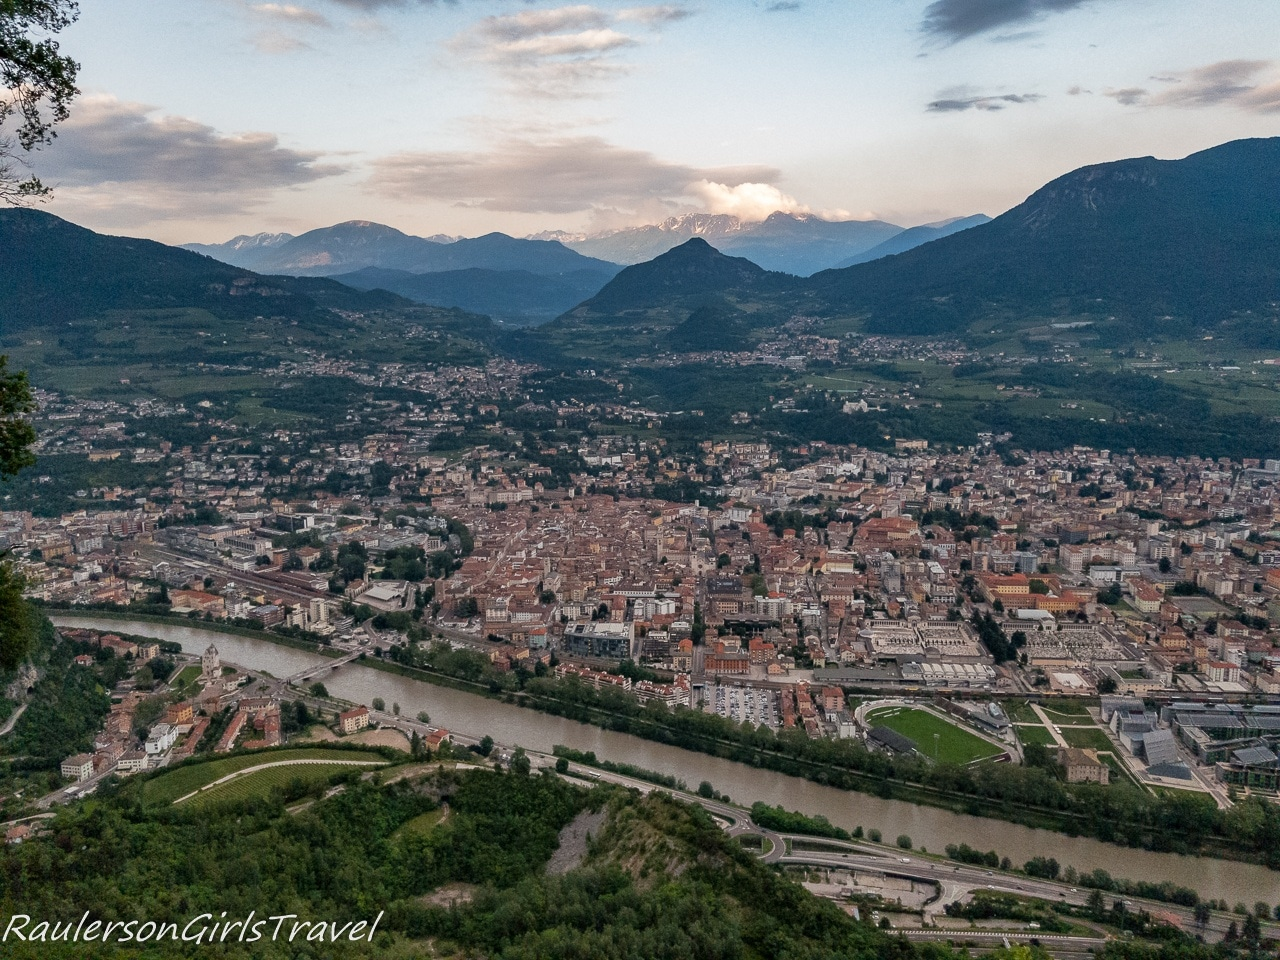 View of Trento from Sardagna at sunset - Trento Cable Car